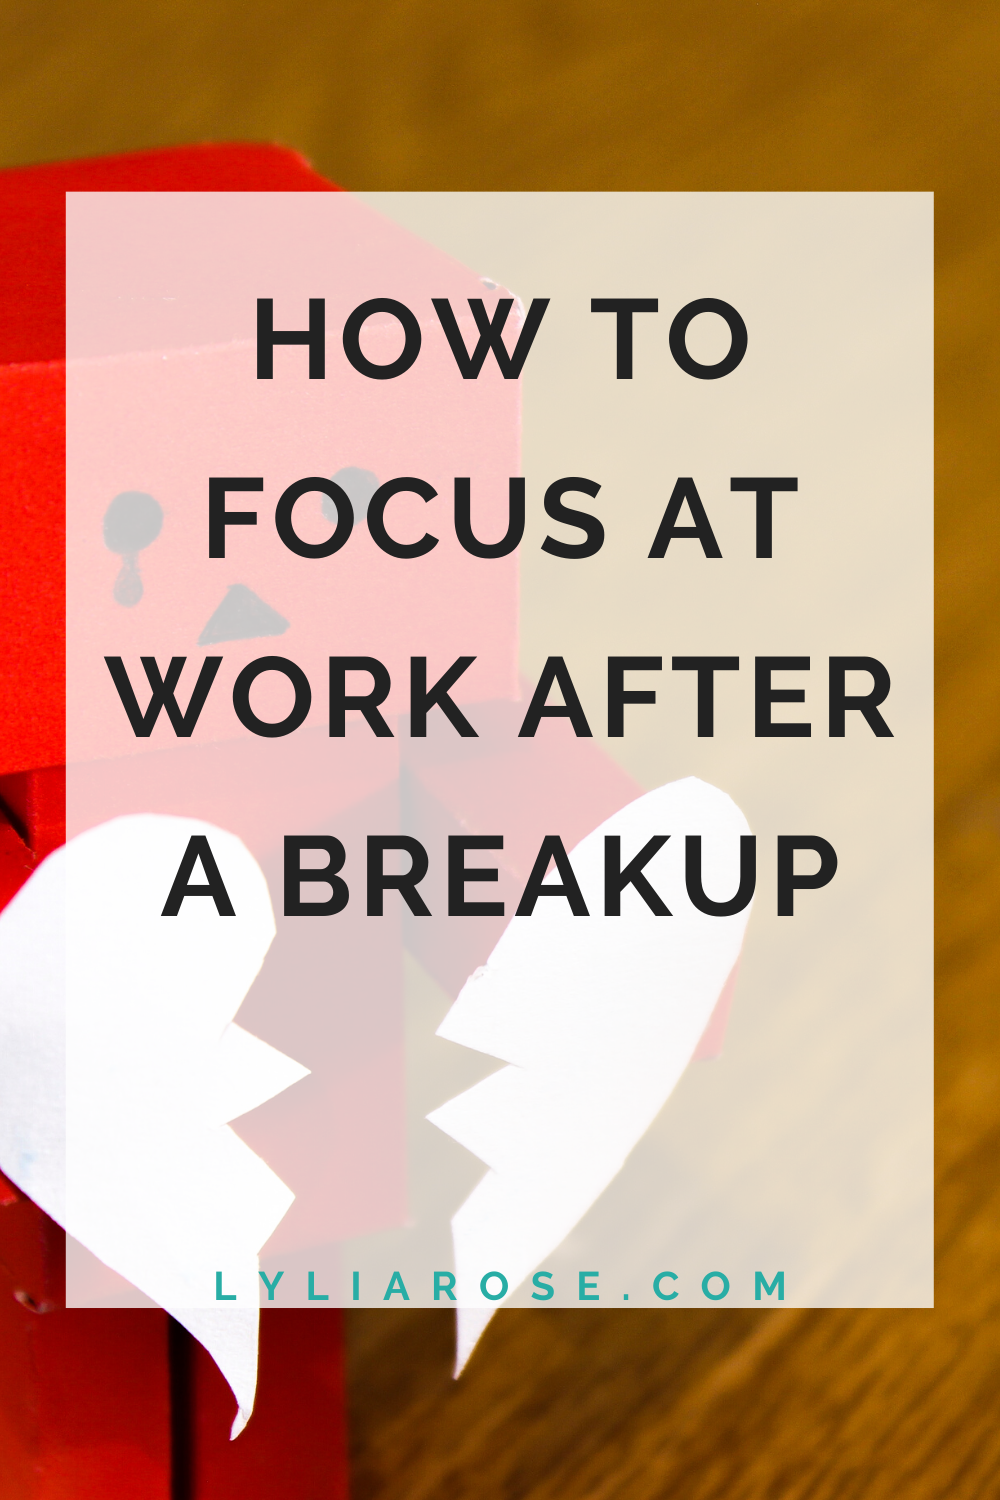 How to focus at work after a breakup